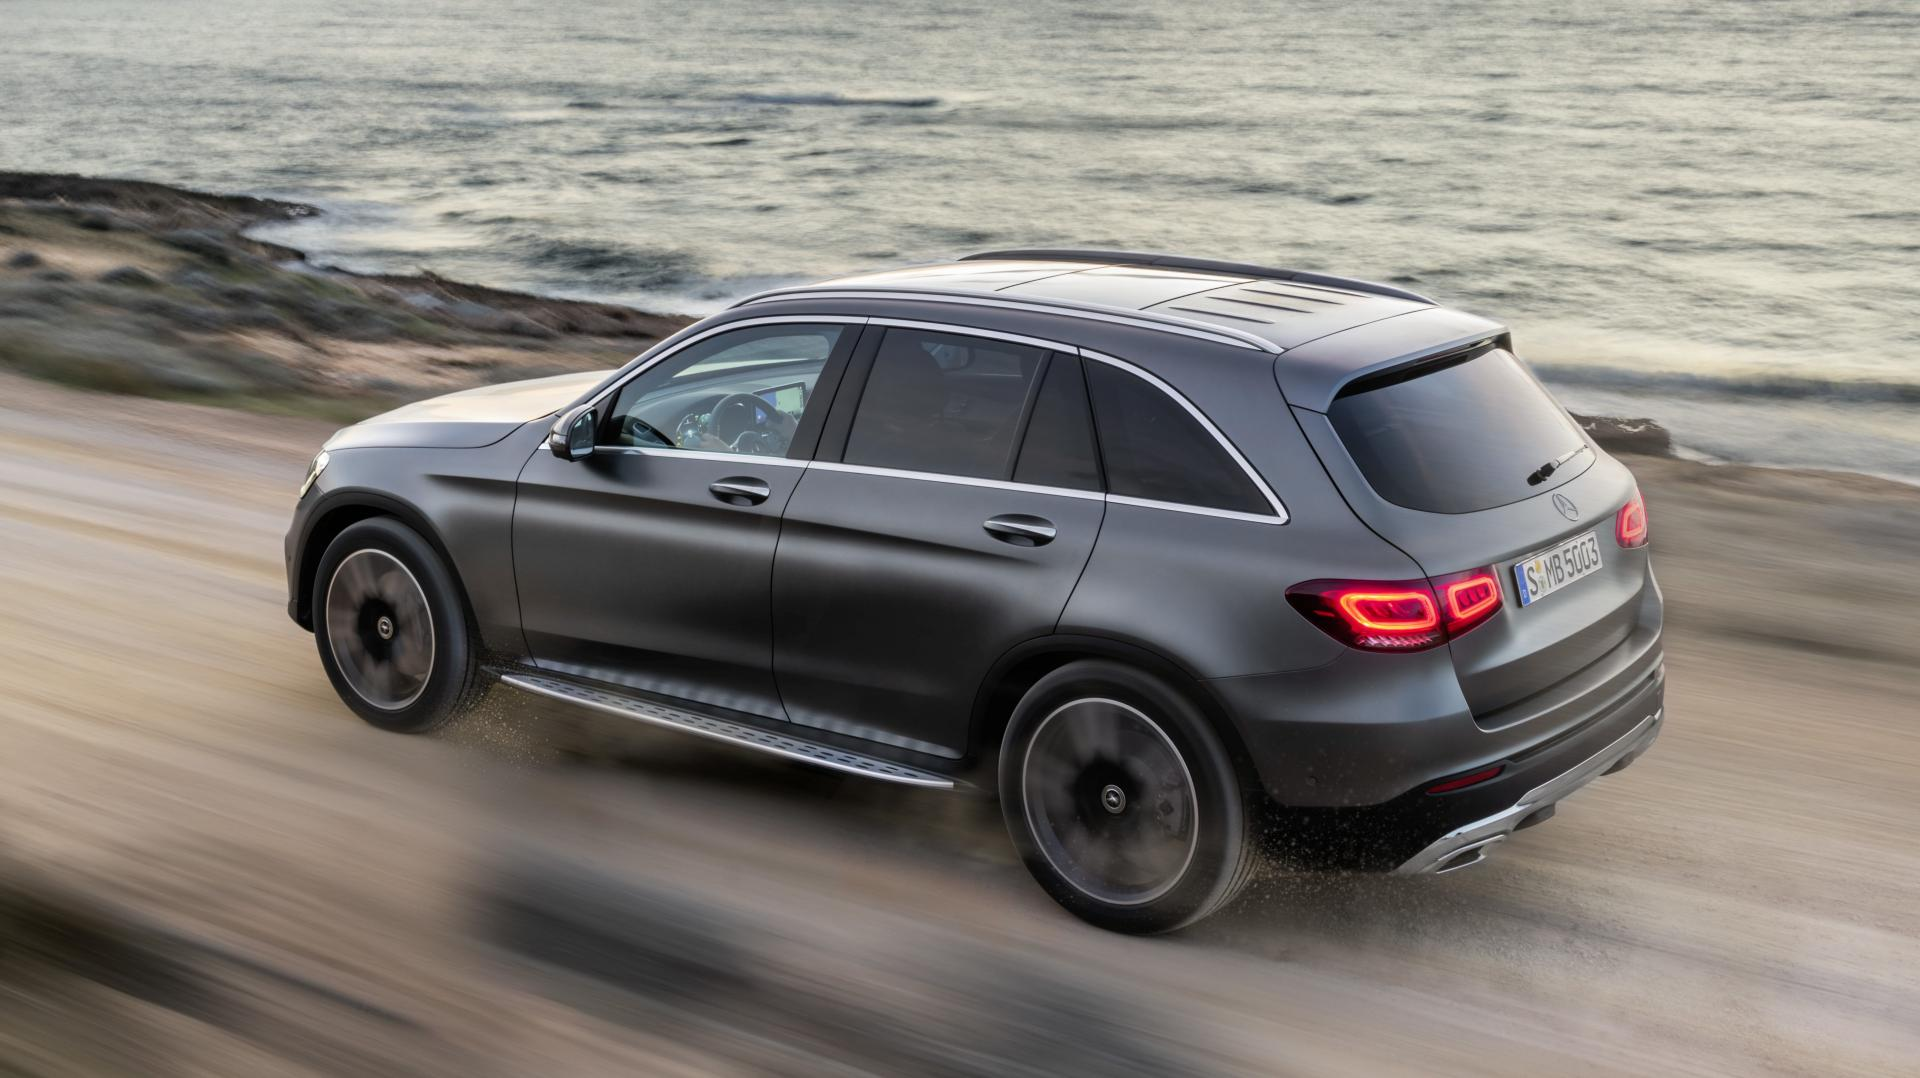 Mercedes GLC-facelift 2019 langs kust en zee